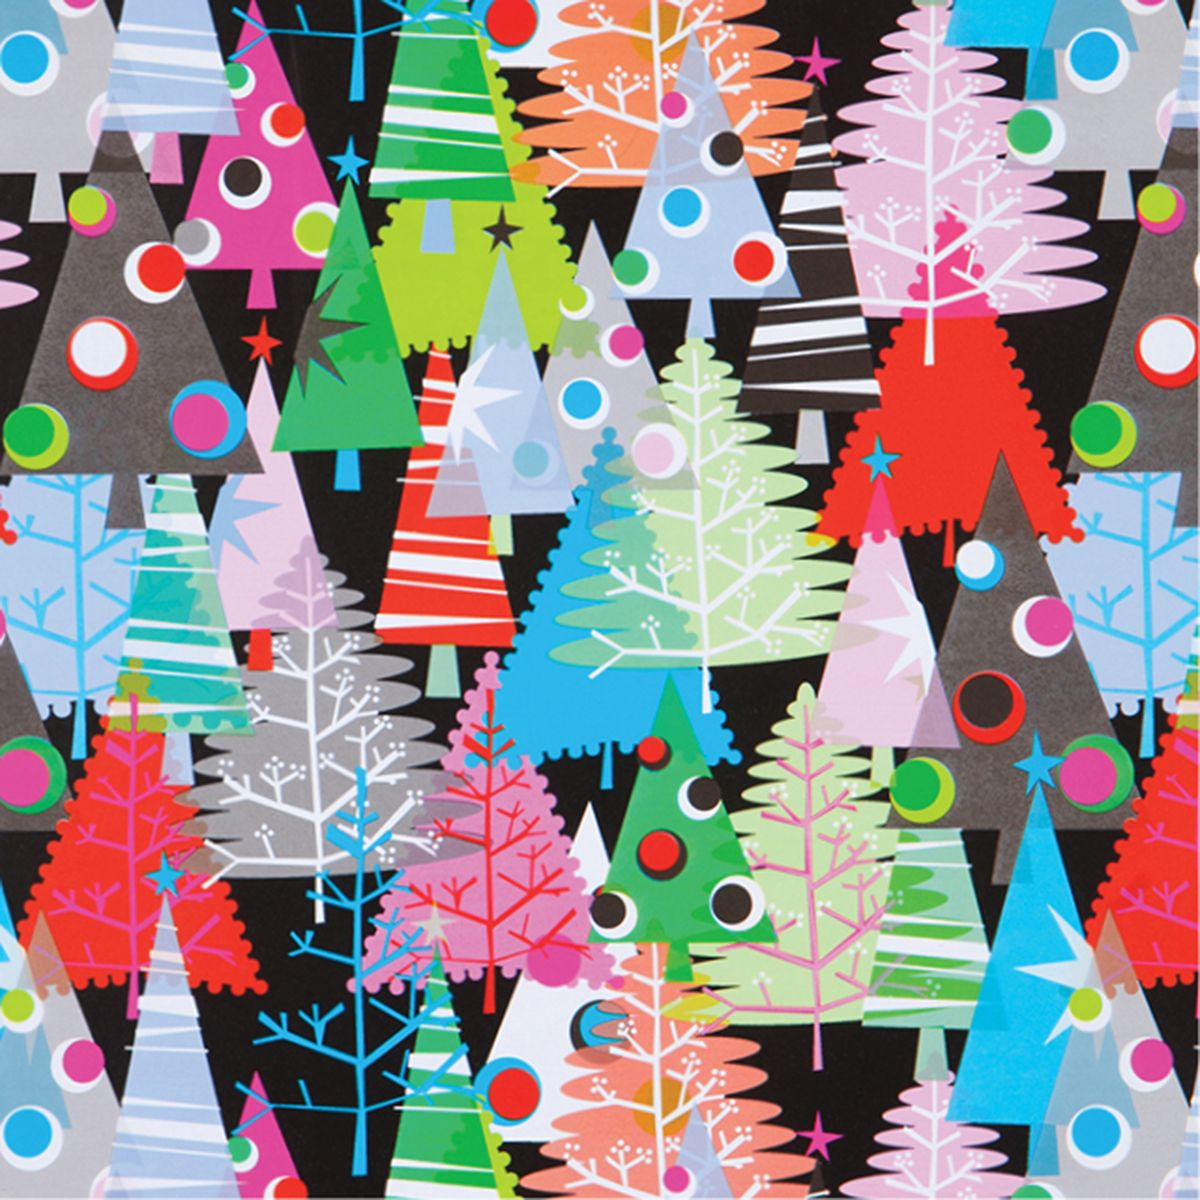 neon christmas trees | Best Christmas Gift Wrap Deigns | Pinterest ...